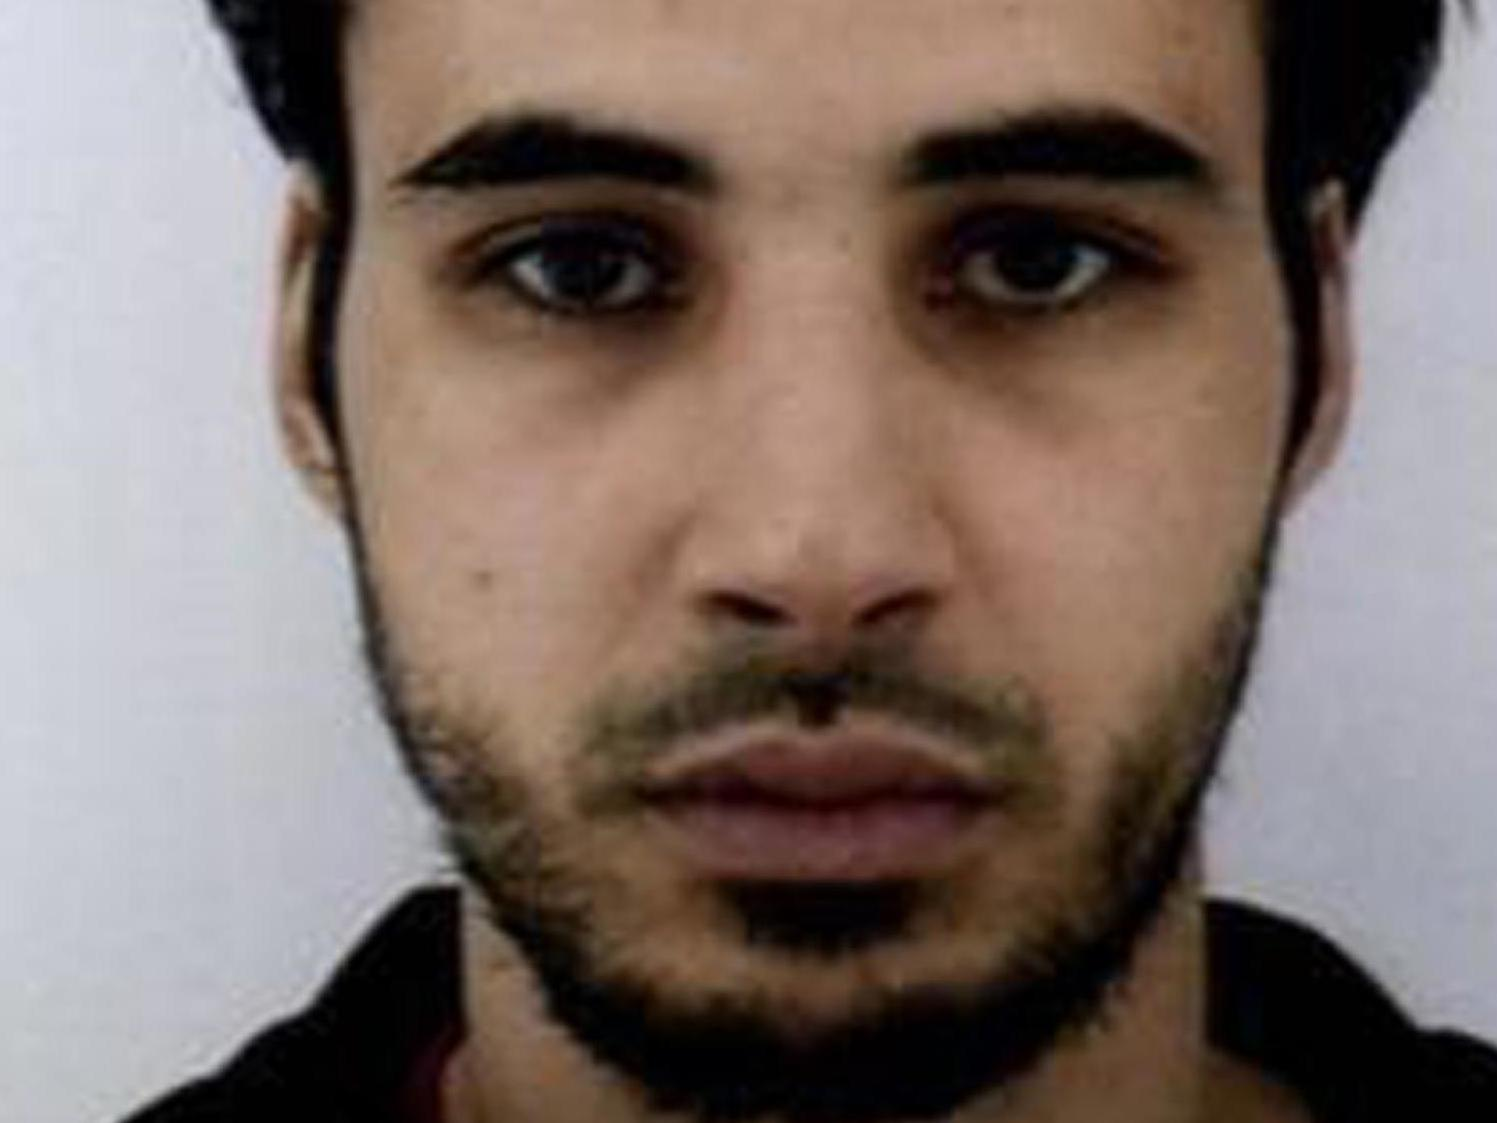 Chérif Chekatt: Strasbourg shooting suspect's family questioned by police as hundreds of officers hunt alleged gunman